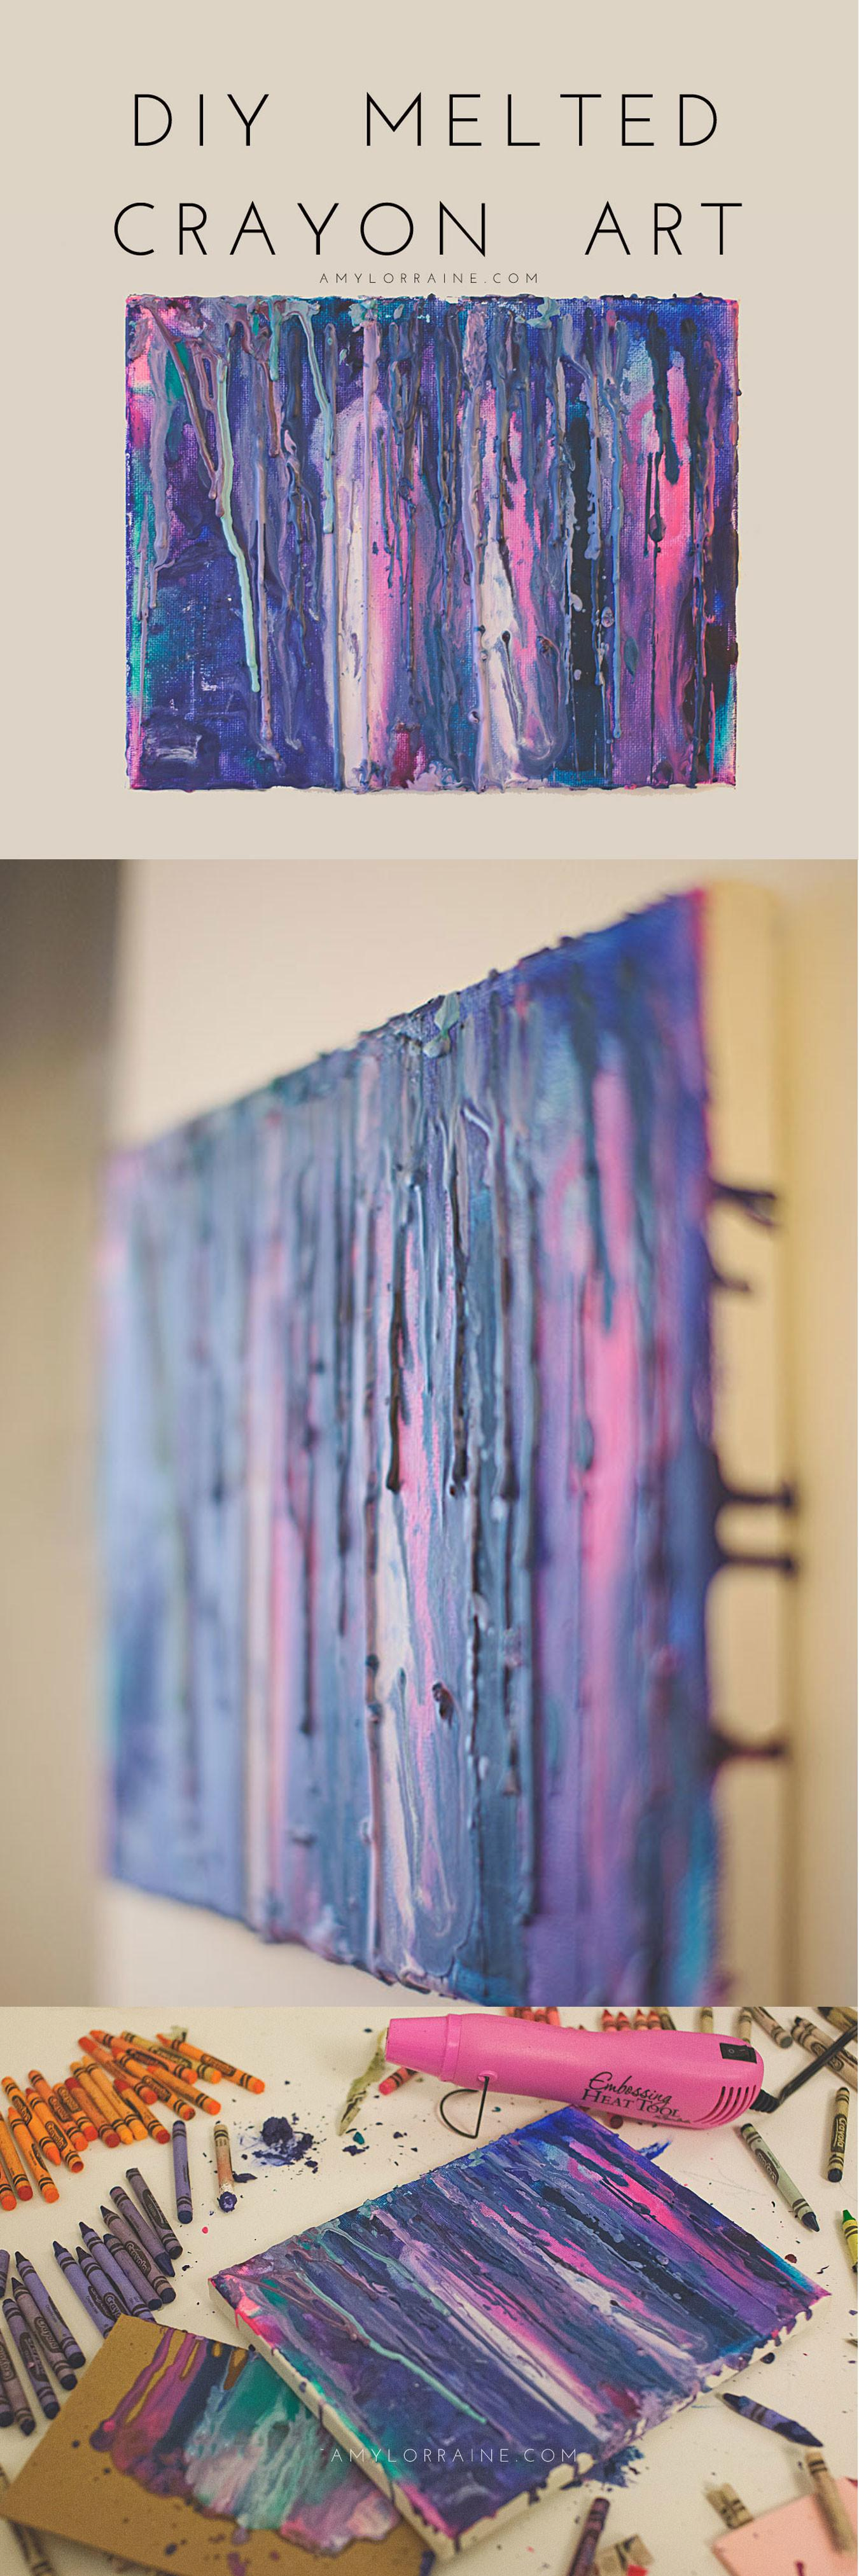 Diy Melted Crayon Art Amy Lorraine Lifestyle